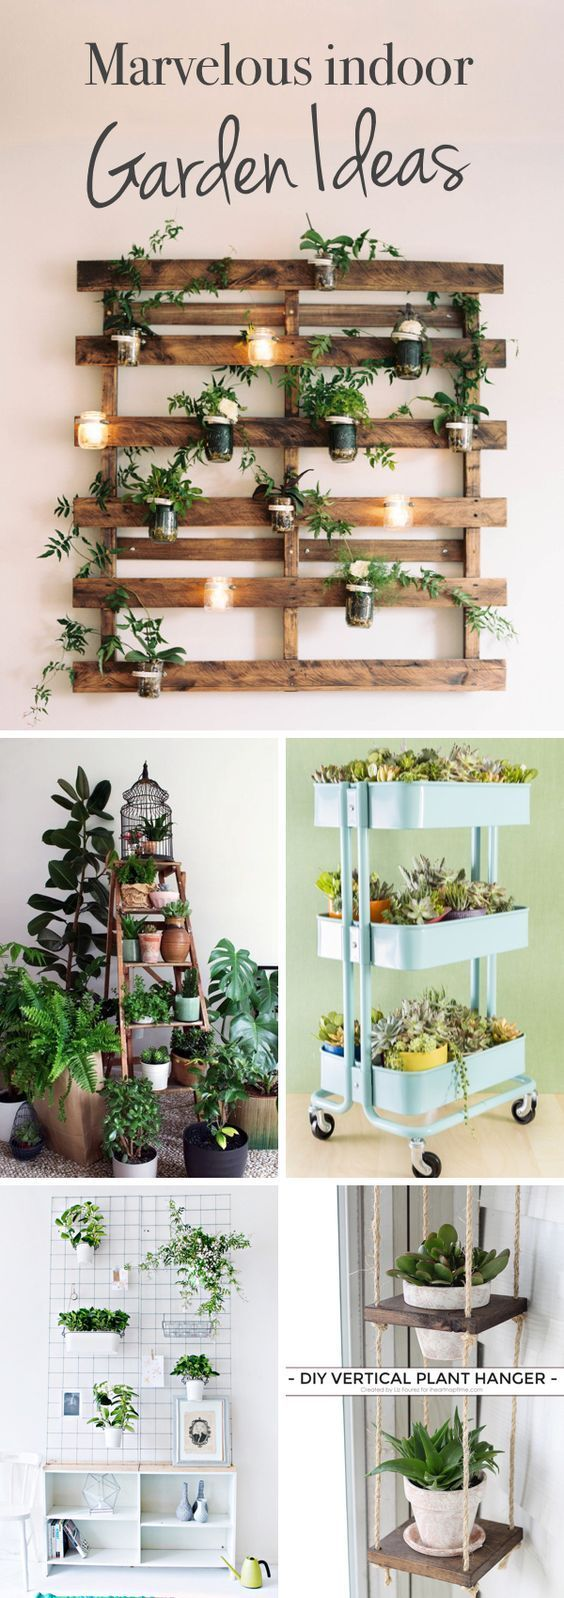 20 Marvelous Indoor Garden Ideas Combating Lack of Space or Harsh Weathers!, #Combating #Gar...